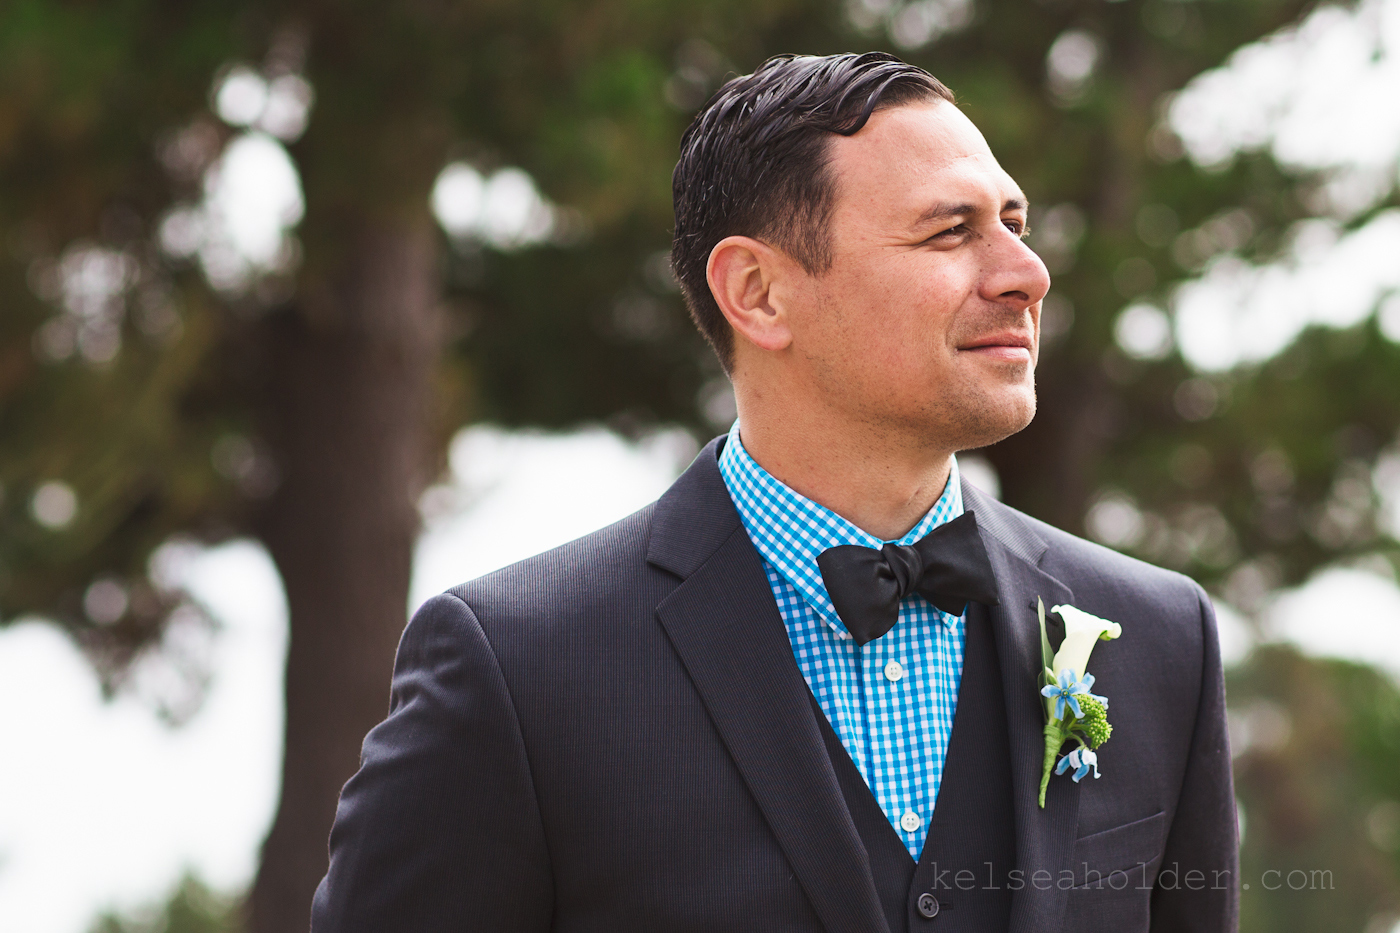 kelsea_holder_eco_outdoor_california_wedding028